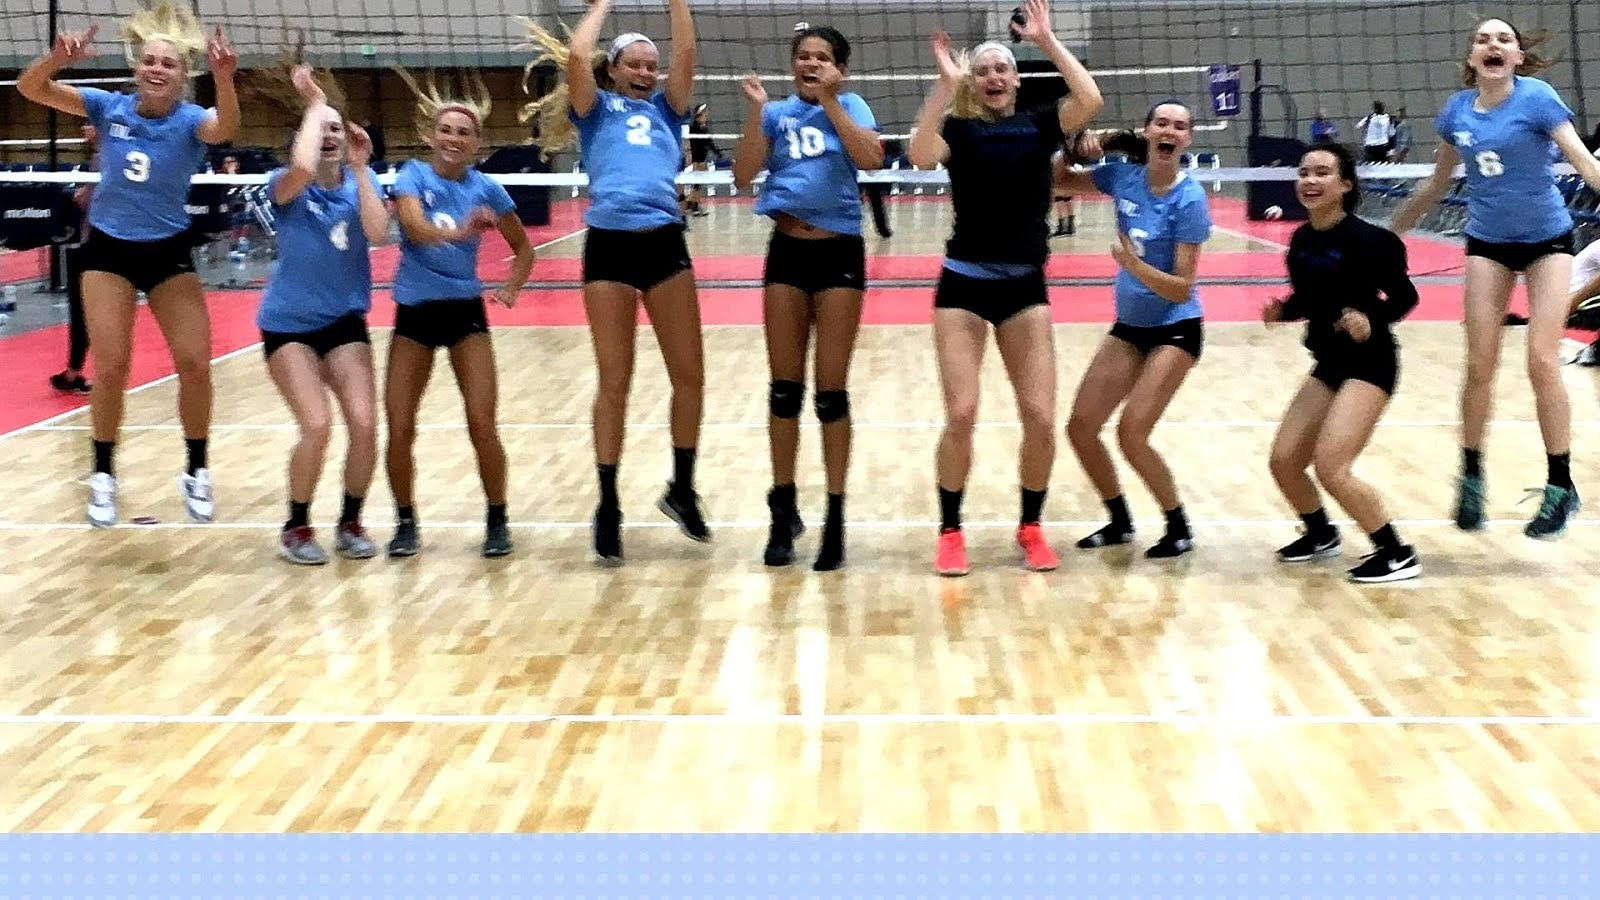 Images of Girl Volleyball Clubs Near Me - #rock-cafe